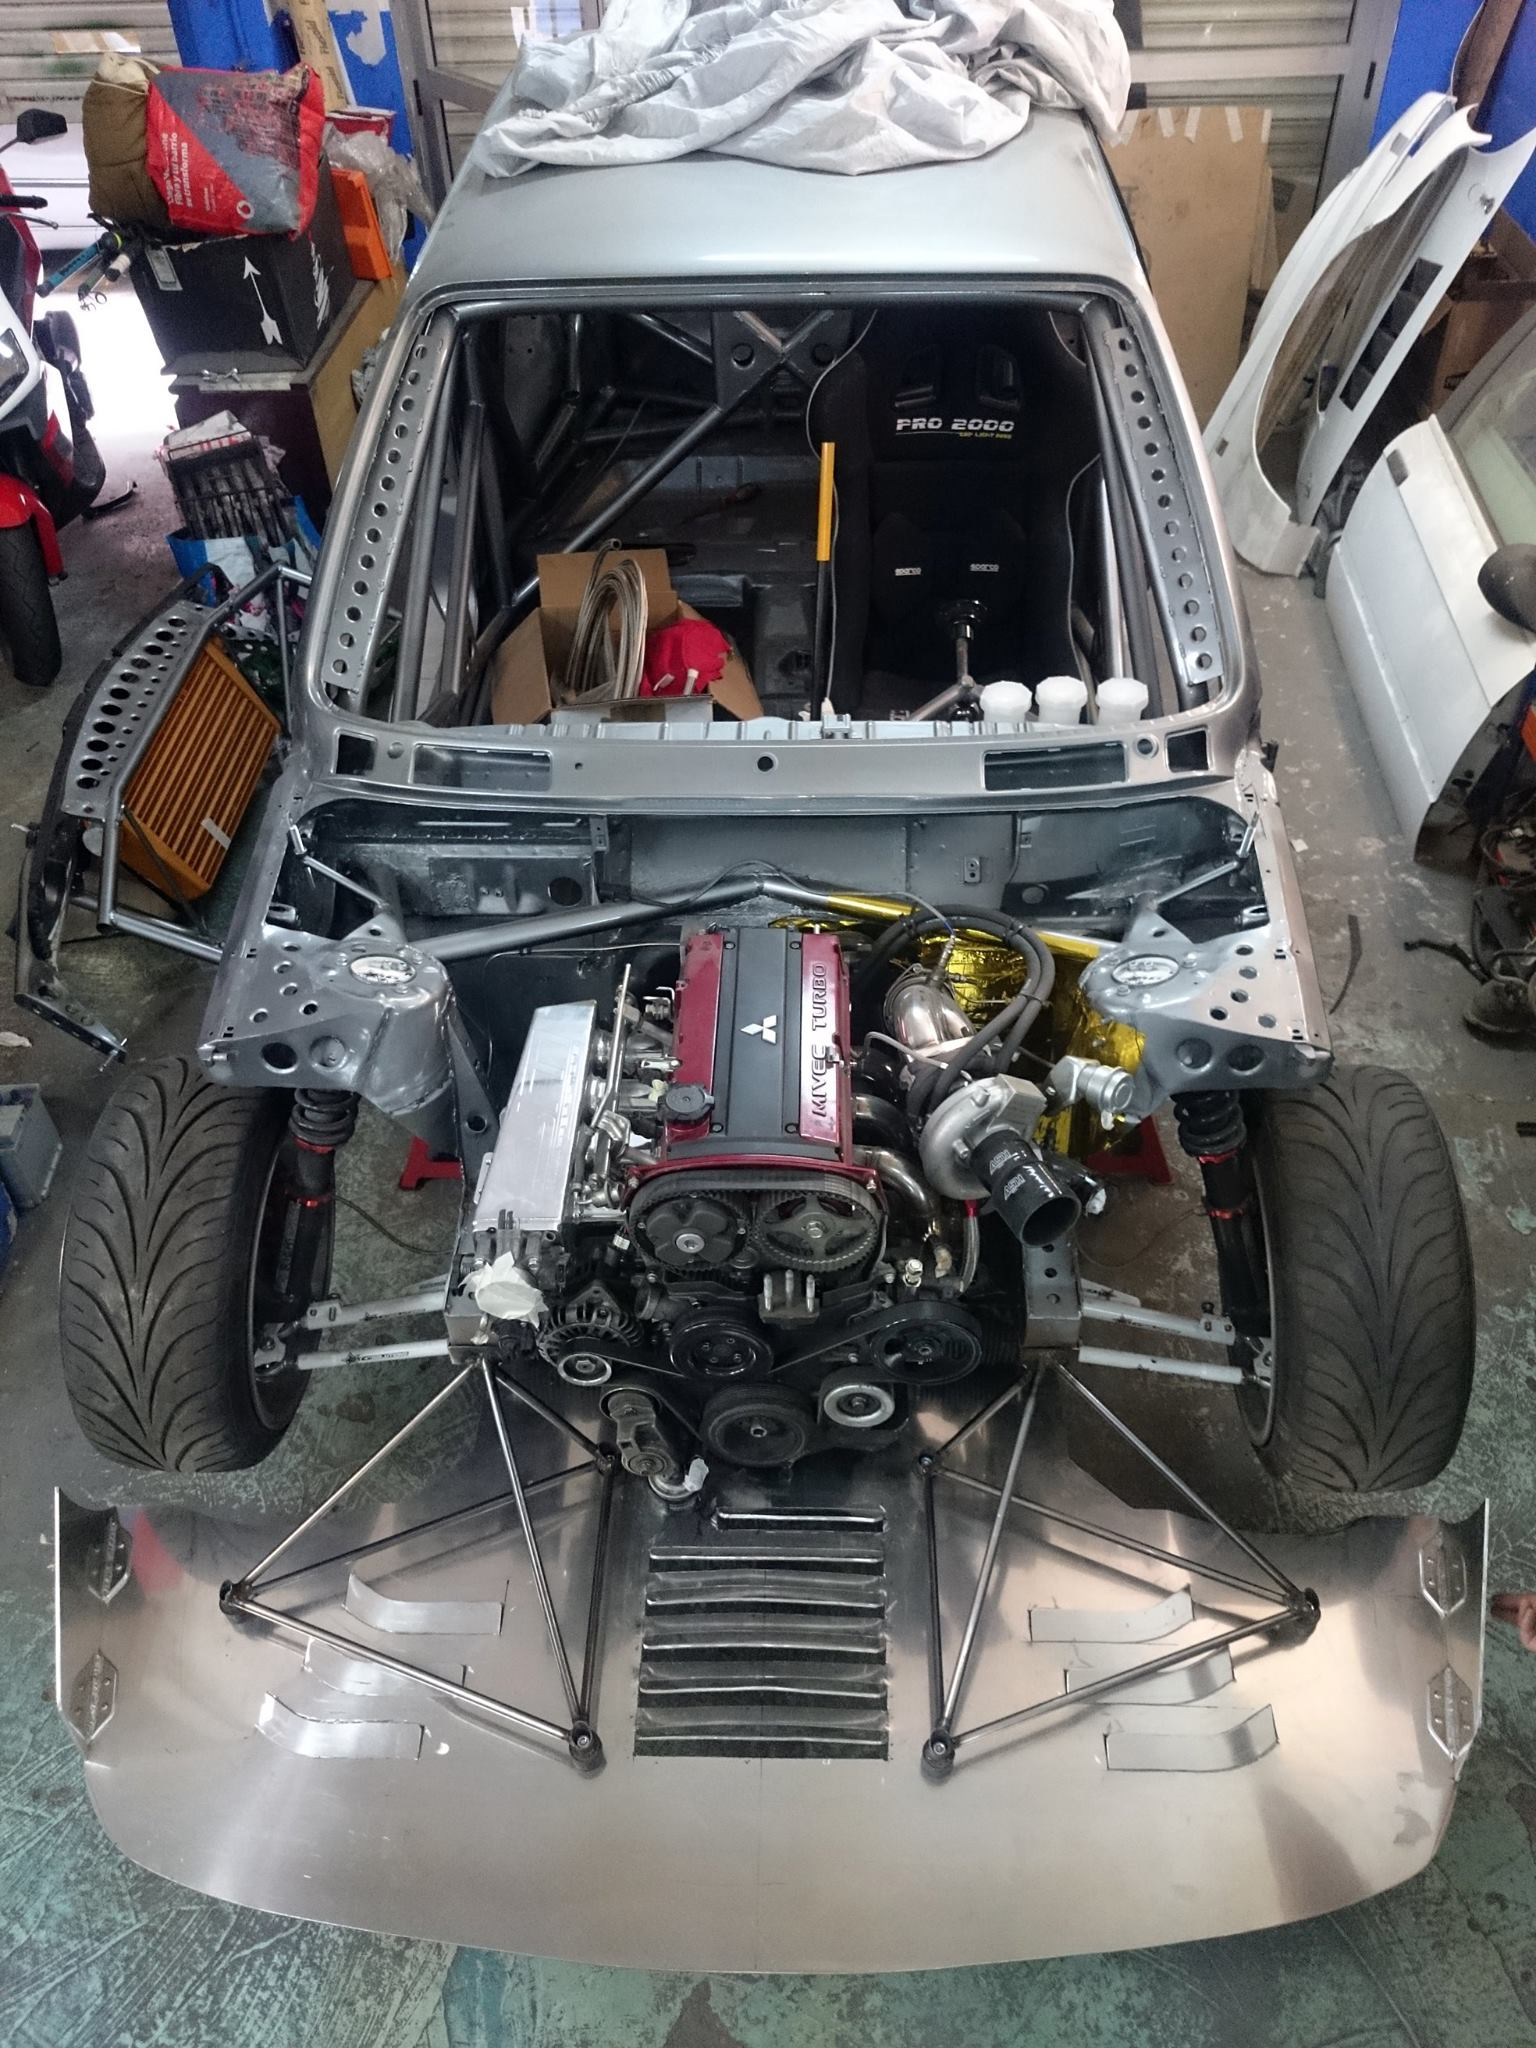 Bmw E30 With A Turbo 4g63 Inline Four Engine Swap Depot Wiring Harness Evo 9 Source Ivanov Racing Works Fb Page And Plasencia Motorsport Via Kamikaze Drift